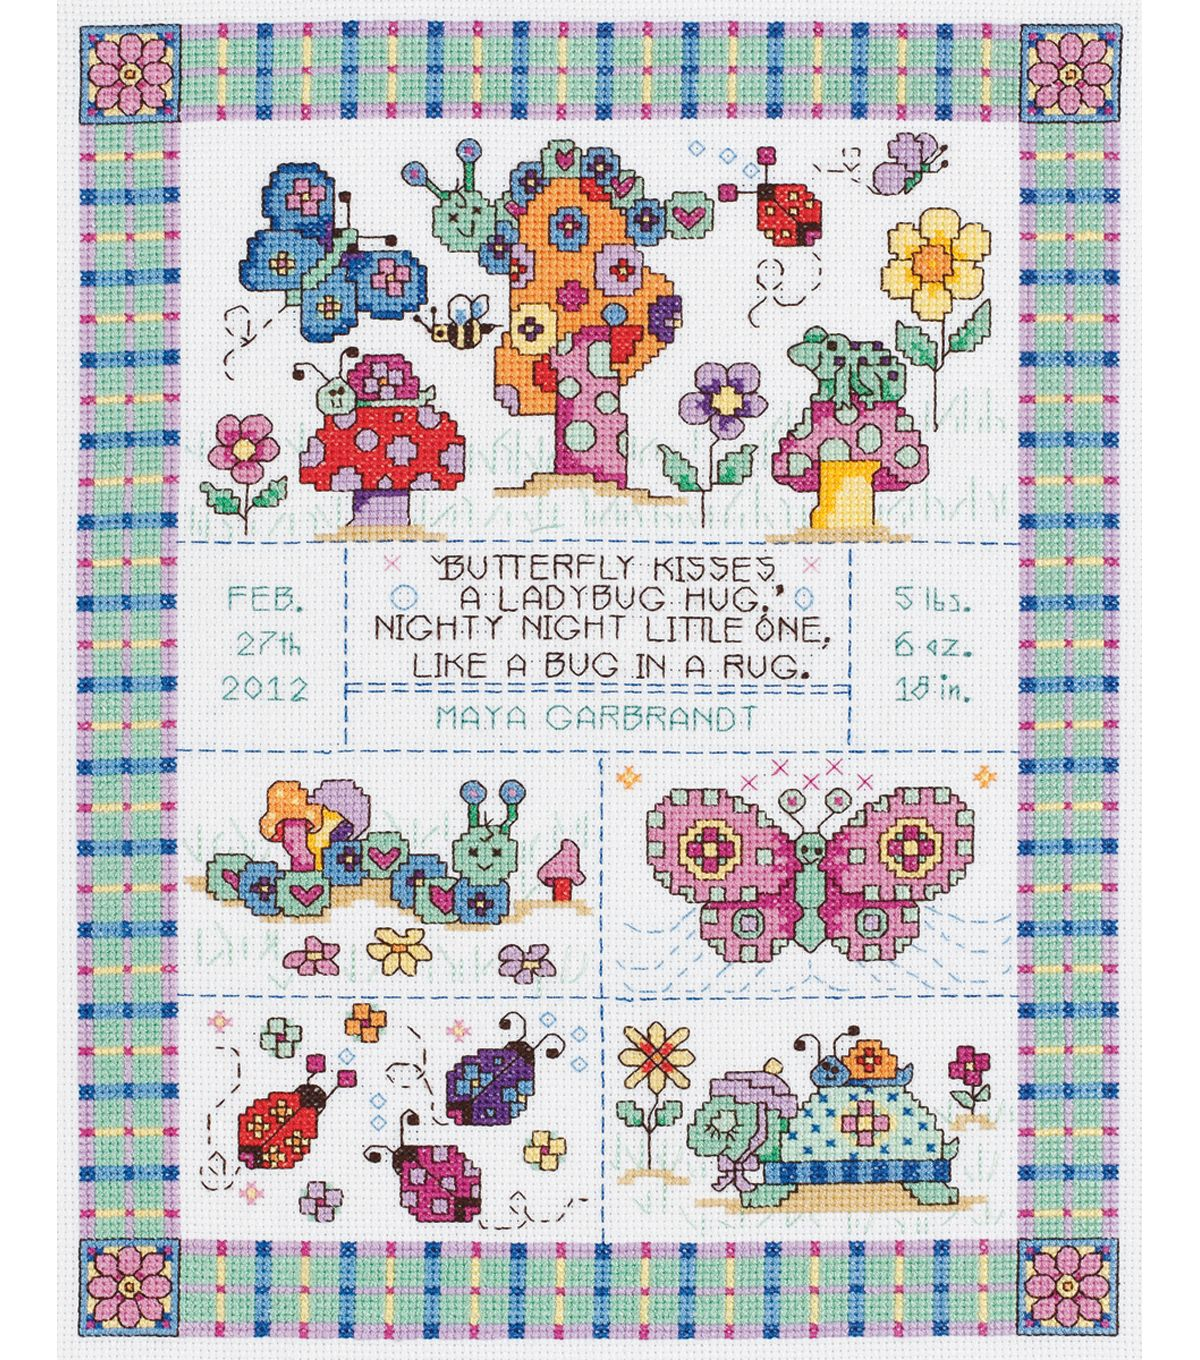 Bug In A Rug Birth Announcement Counted Cross Stitch Kit 9